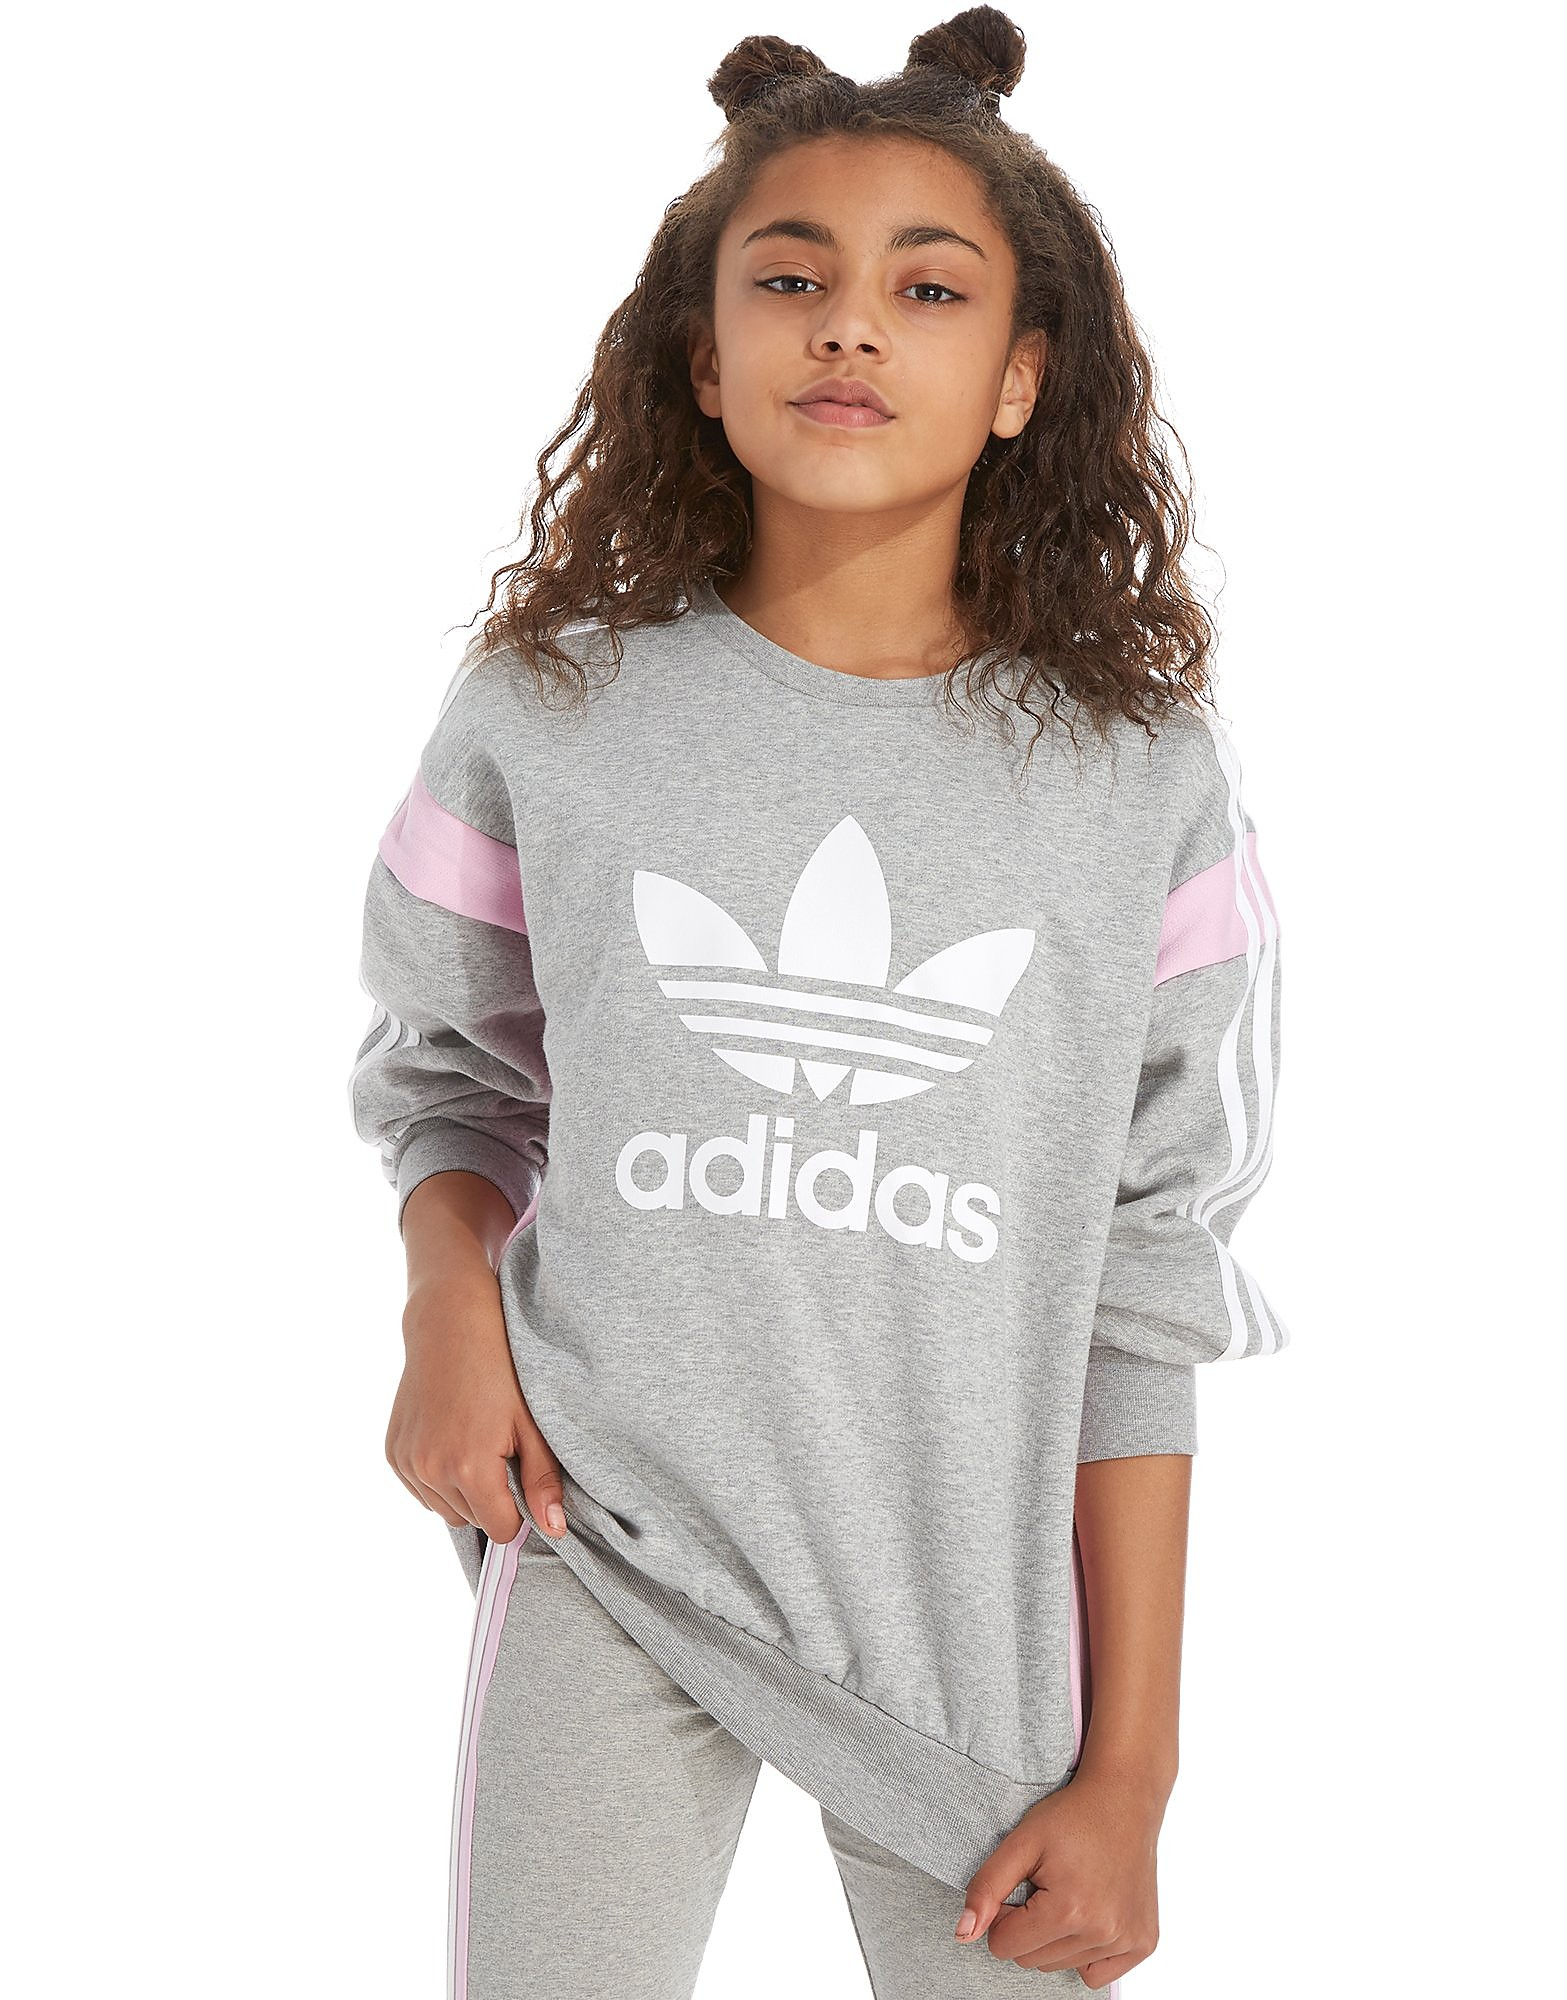 adidas Originals Girls Boyfriend Fit Crew Sweatshirt Junior